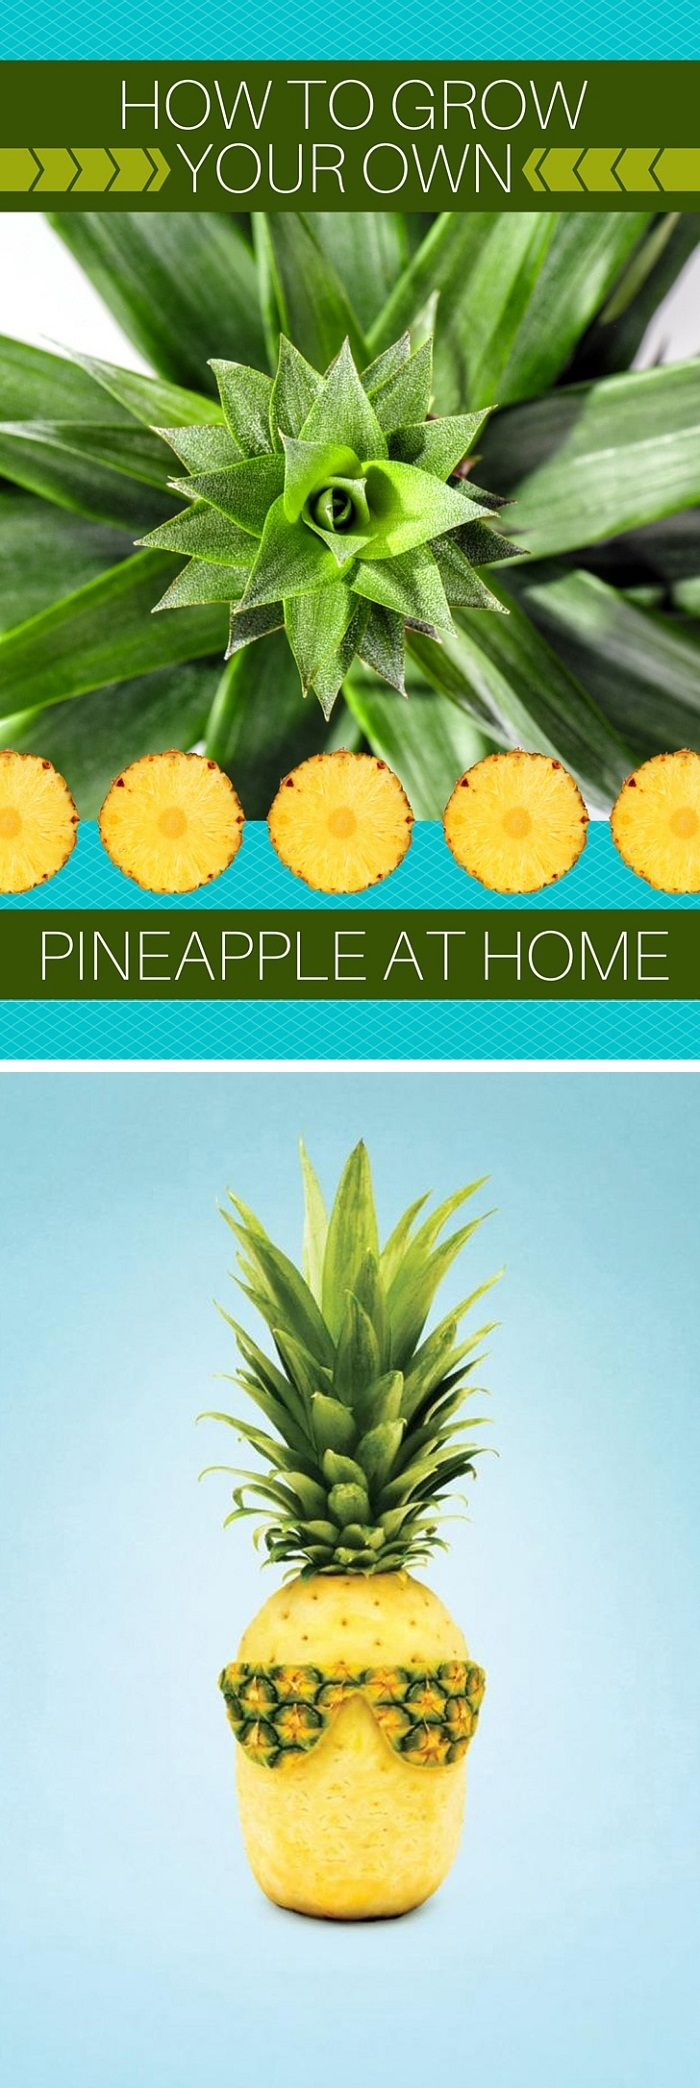 How To Grow Your Own Pineapple At Home | Natural Beauty ...